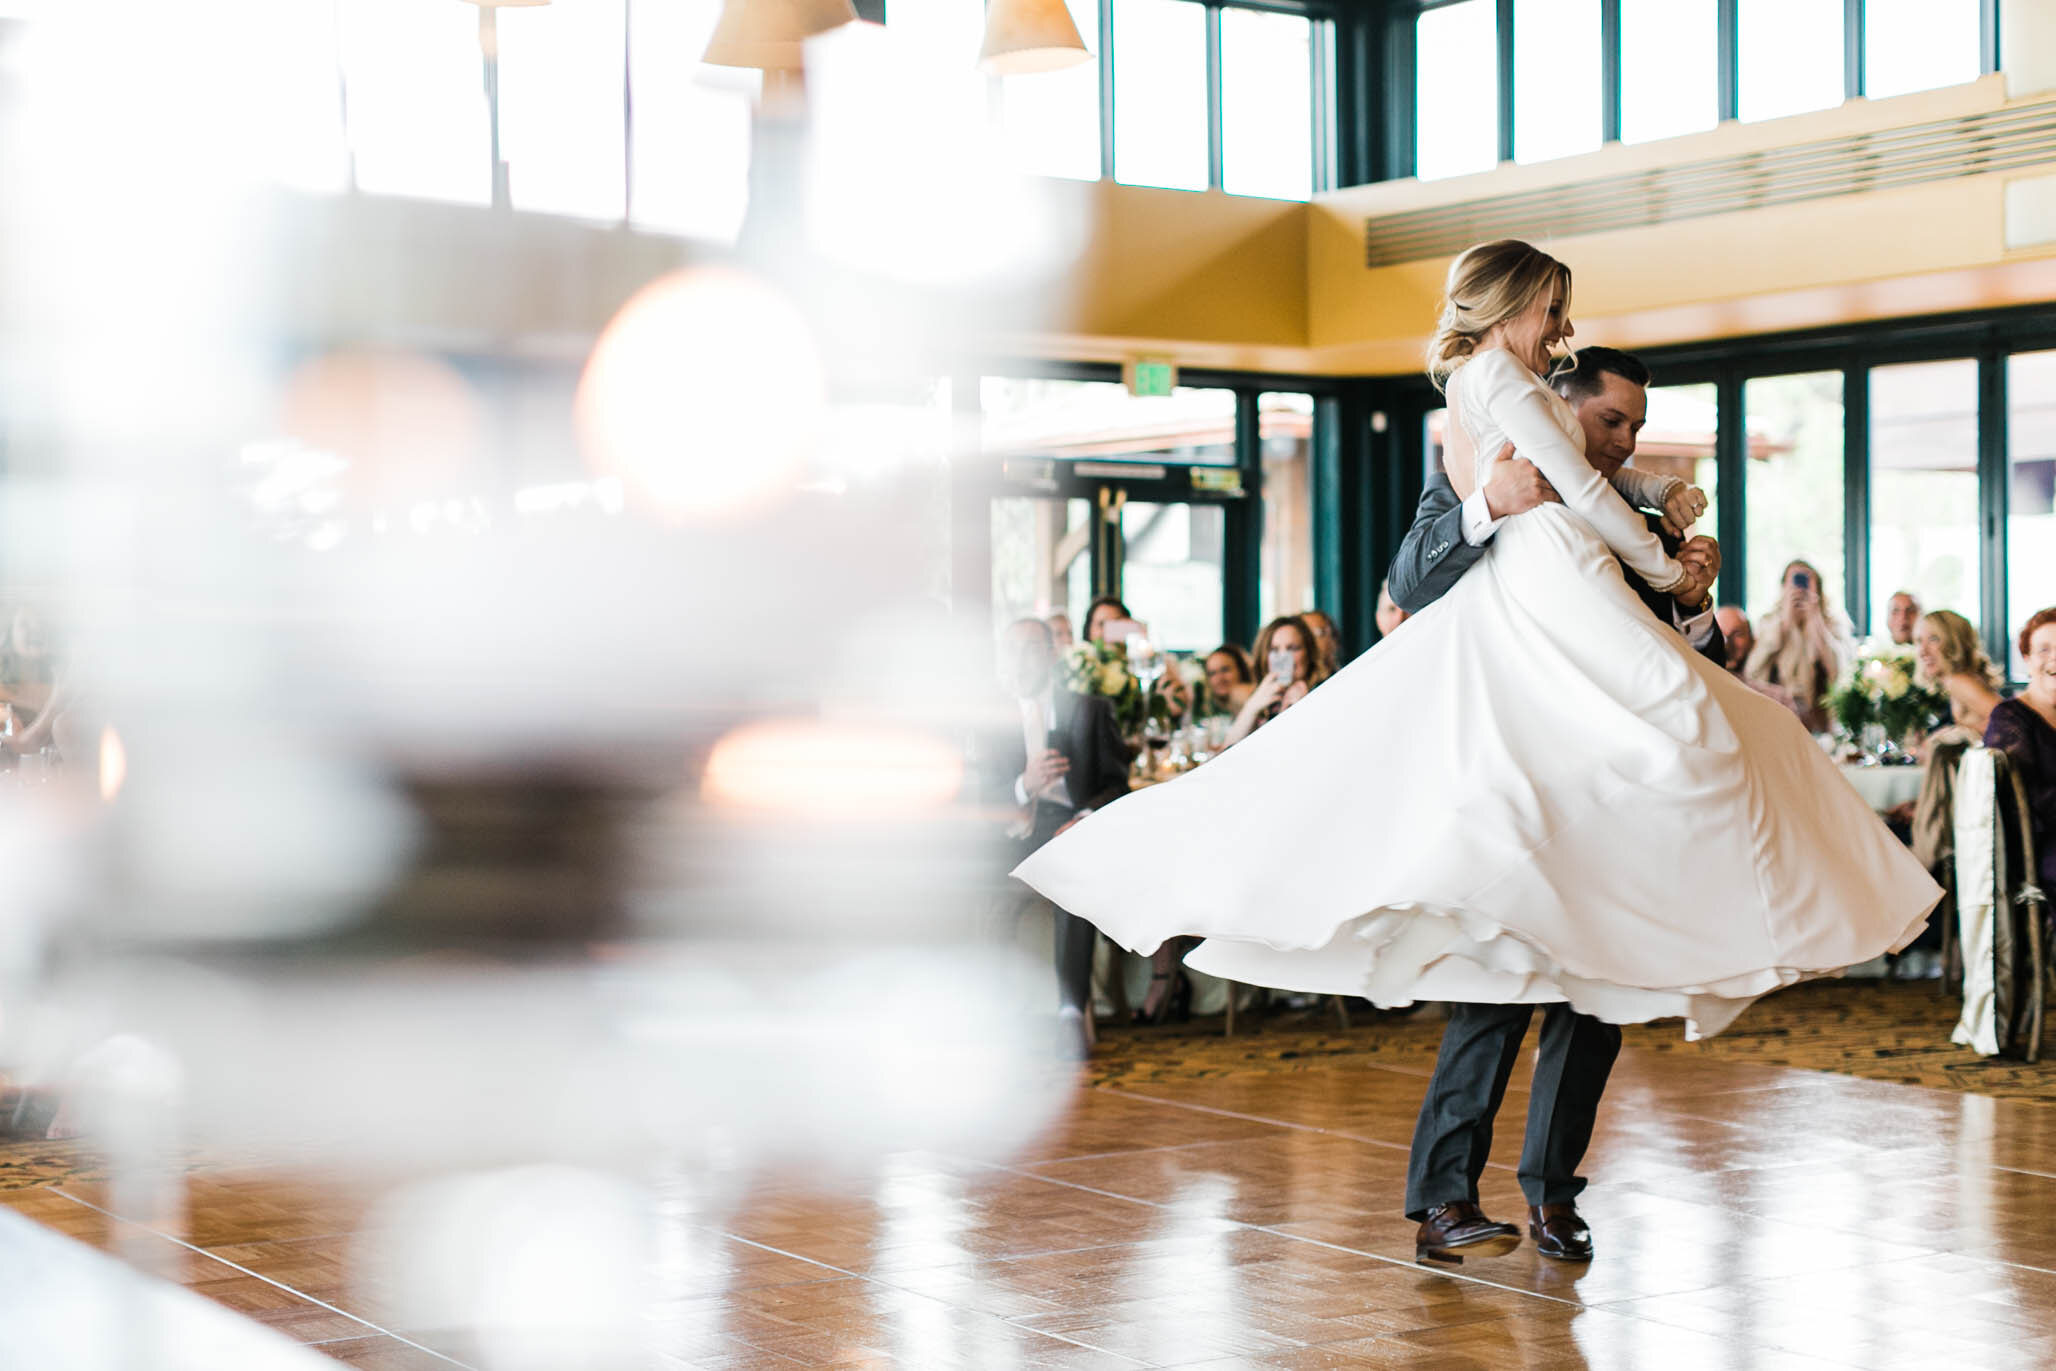 Their first dance captured ALL our hearts.